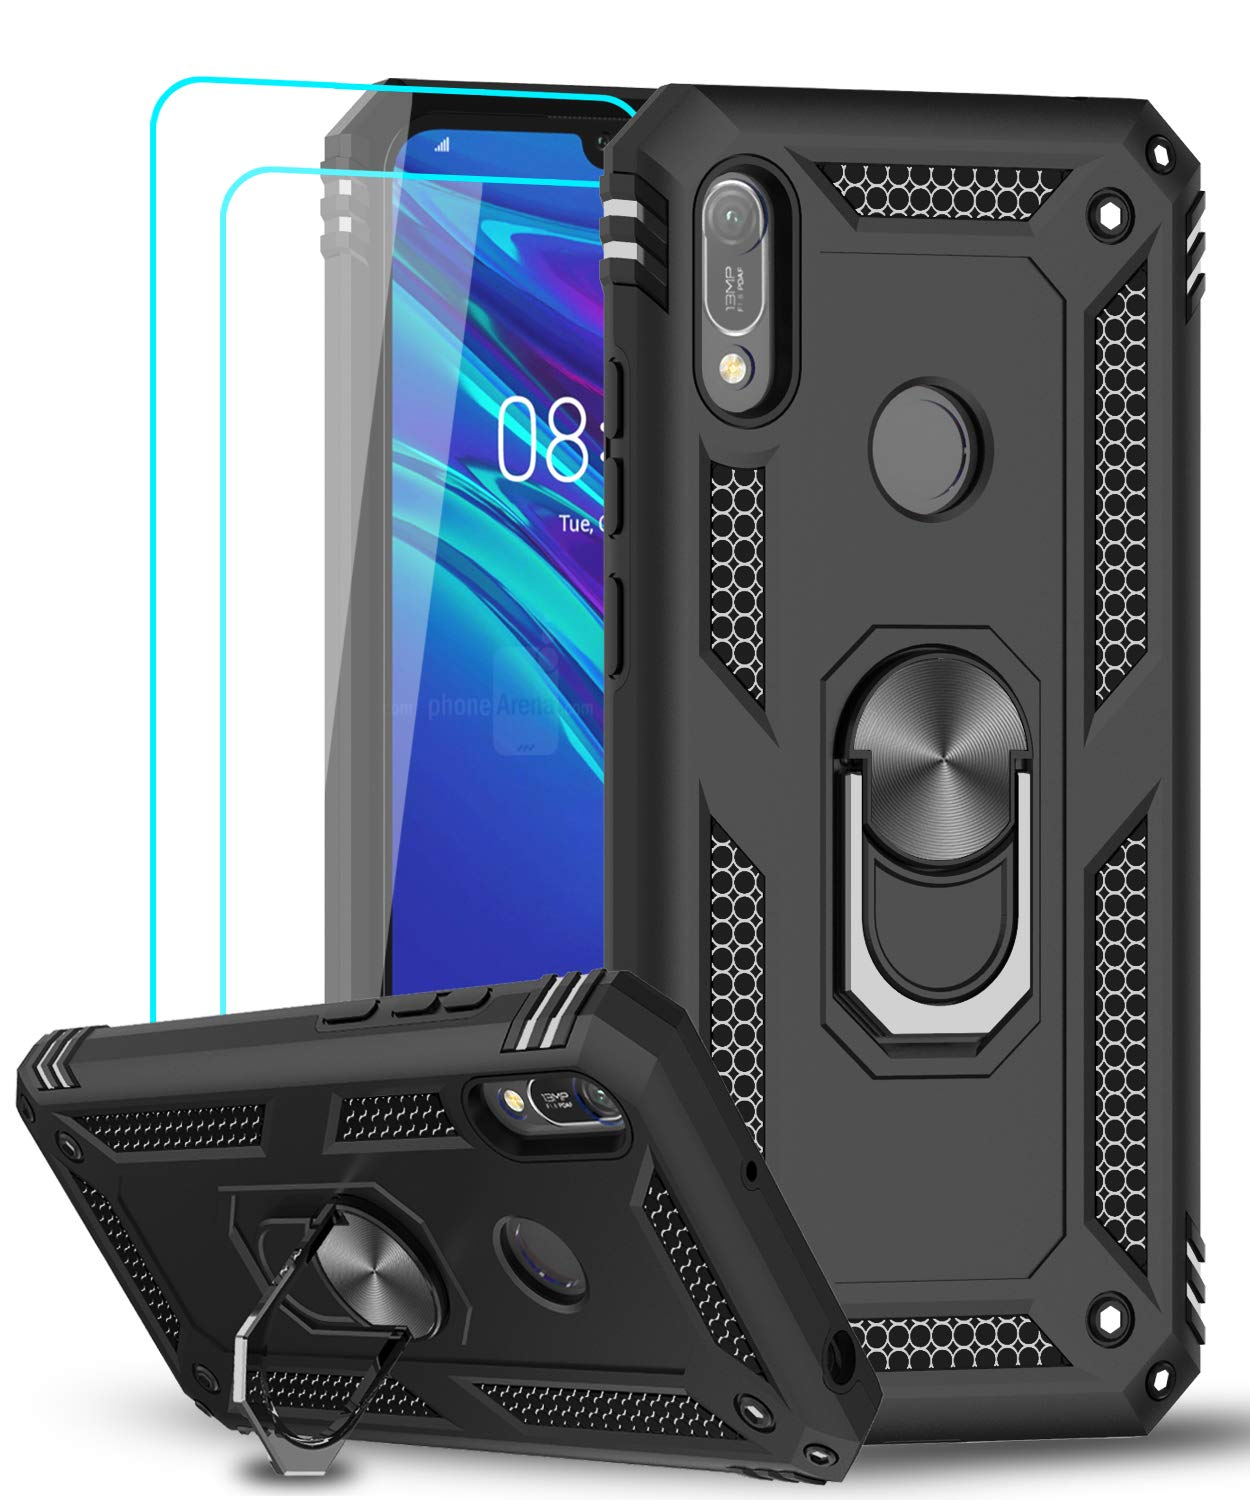 LeYi Case for Huawei Y6 2019/Honor 8A with Ring Holder, Full Body Protective Silicone TPU Gel Personalised Shockproof Tough Armour Phone Cover with Screen Protector for Huawei Y6 2019/Honor 8A Black